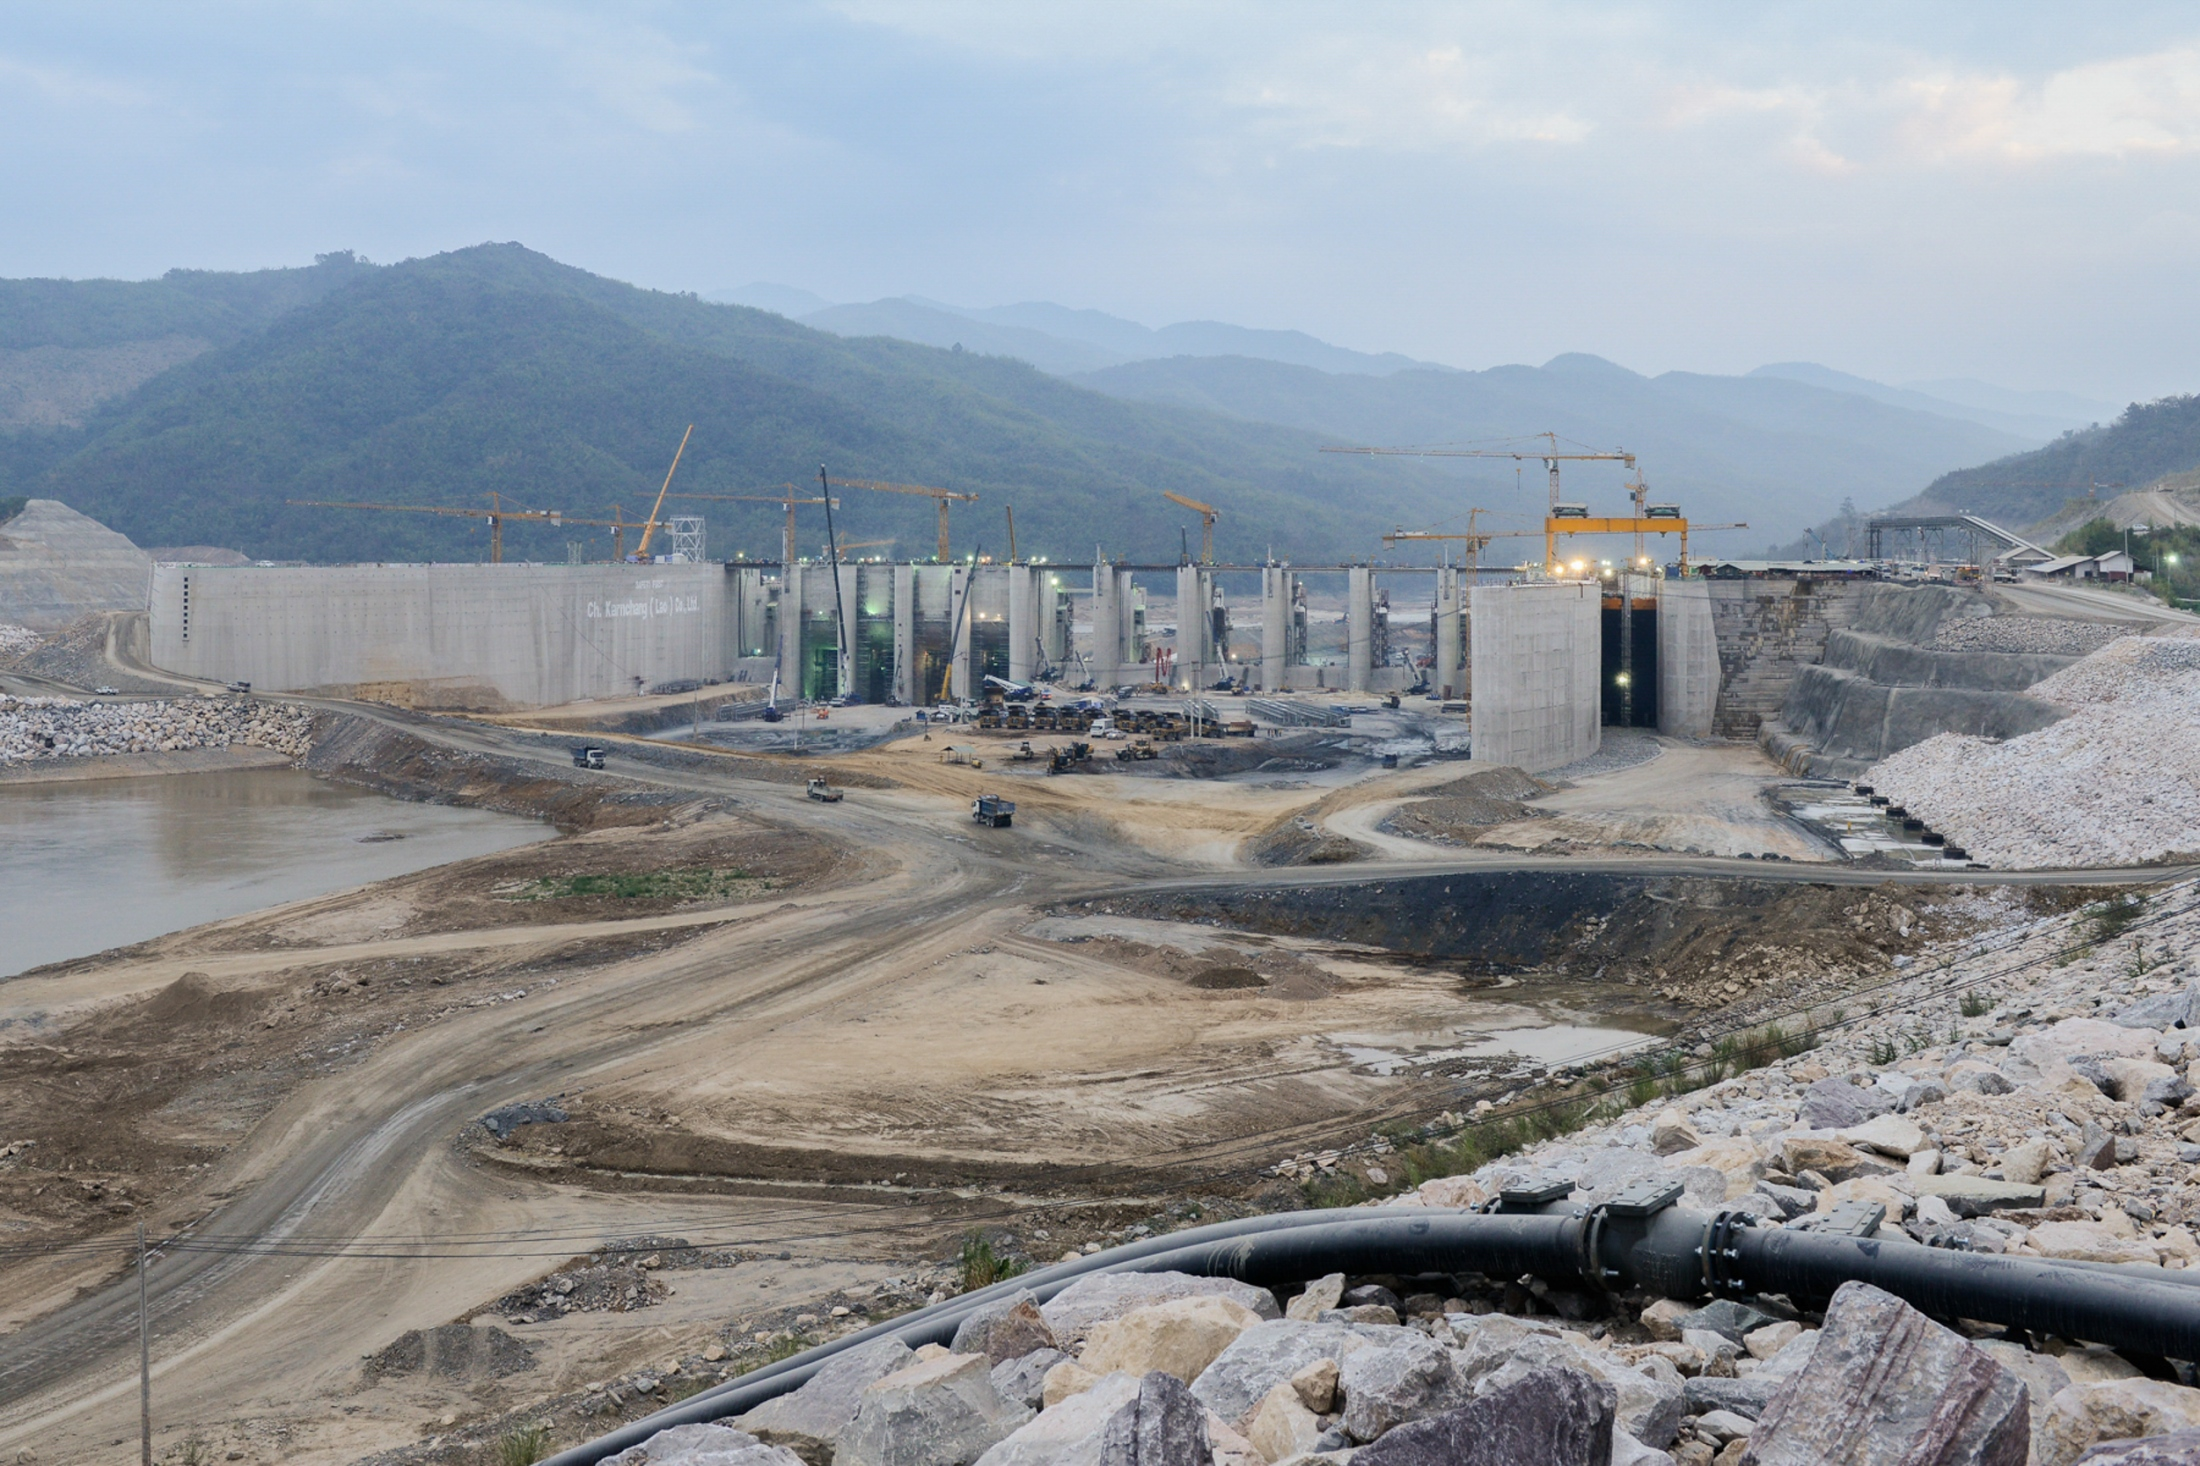 "The Xayaburi Dam would be 820 metres (2,690 ft) long and 32.6 metres (107 ft) high with a rated hydraulic head of 18 metres (59 ft) becomes the largest energy exporter in the region, or the ""Battery of Asia."" Laos is one of the poorest and least developed countries in East Asia. The construction of this massive hydropower dam will expand the electricity capacity for the country and sell it to countries nearby and make huge economic benefits. Critics say it could threaten fisheries and rice cultivation which in turn could also threaten the livelihoods of millions of people living in the lower parts of the Mekong river."